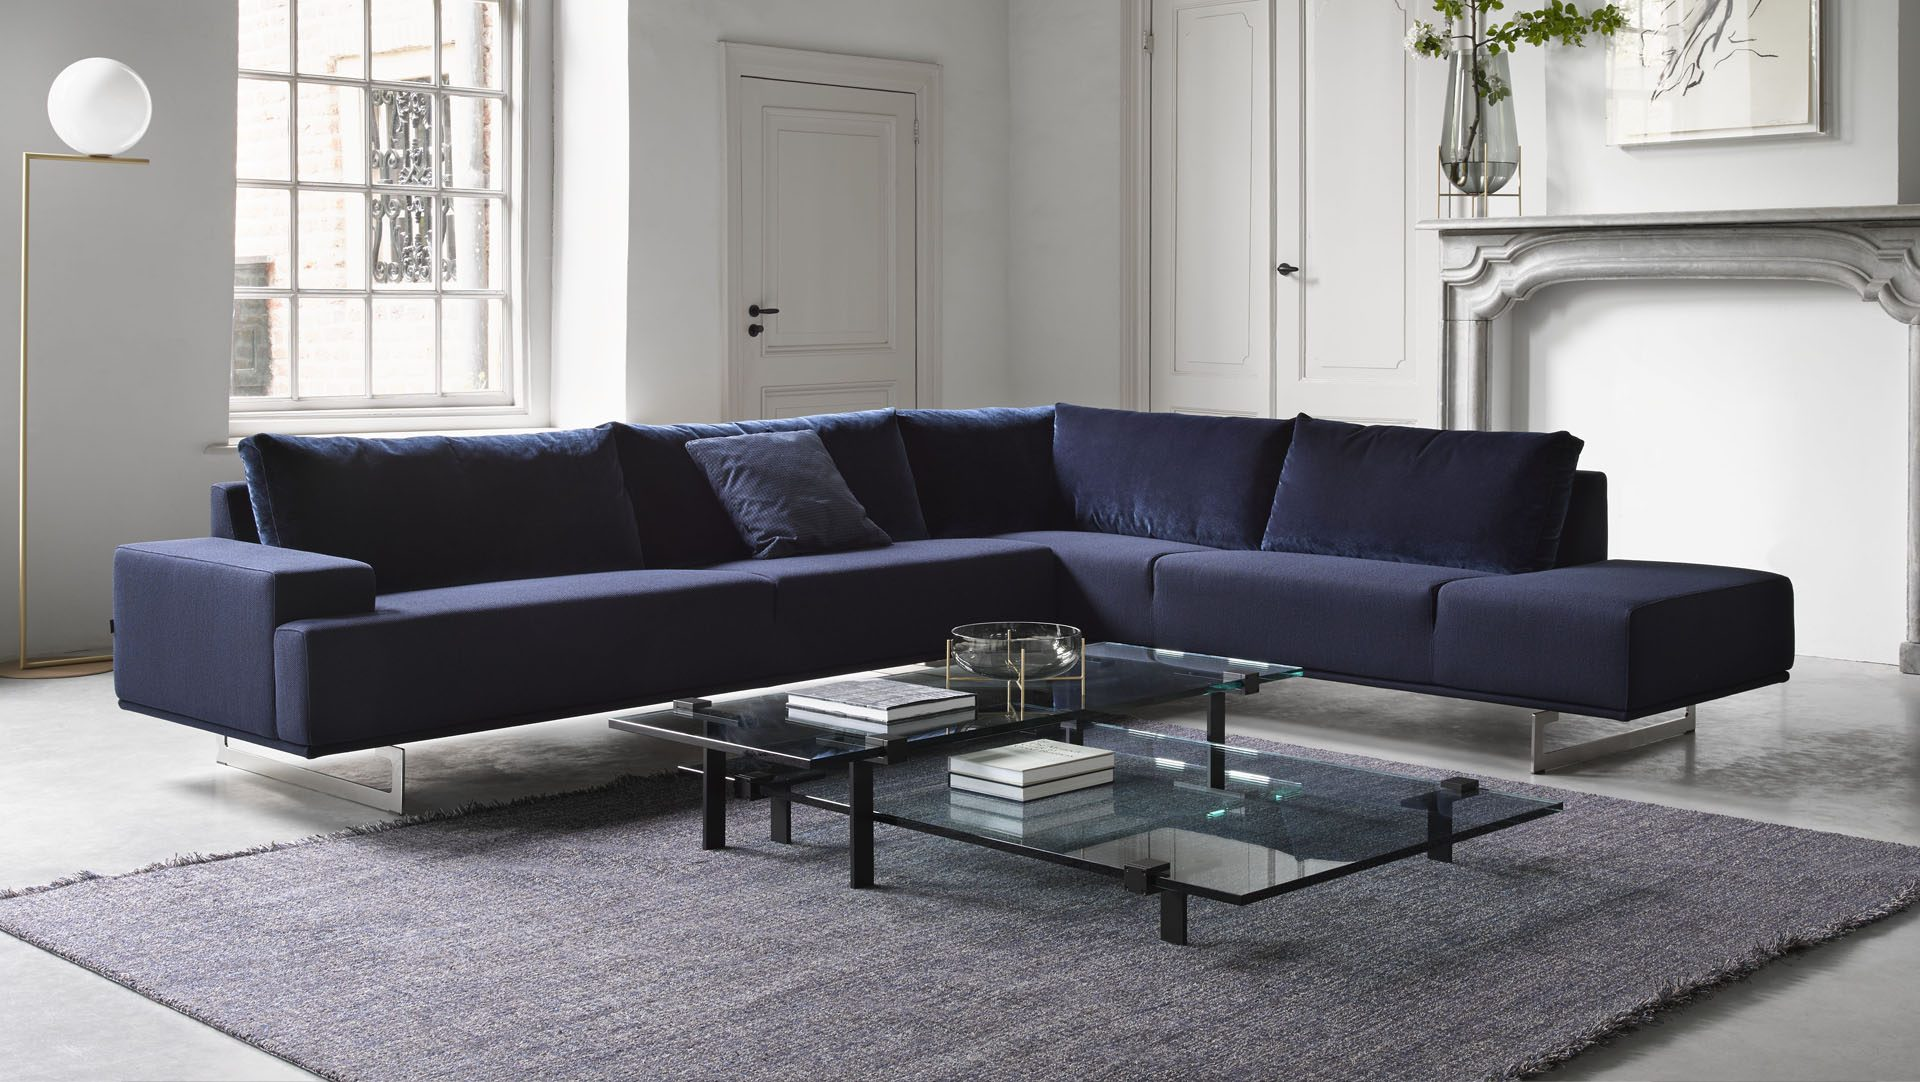 Gelderland 7881 Embrace Soft 7920 T Table set HR hoekbank bank lounge zitbank elementen vanderlindeinterieur